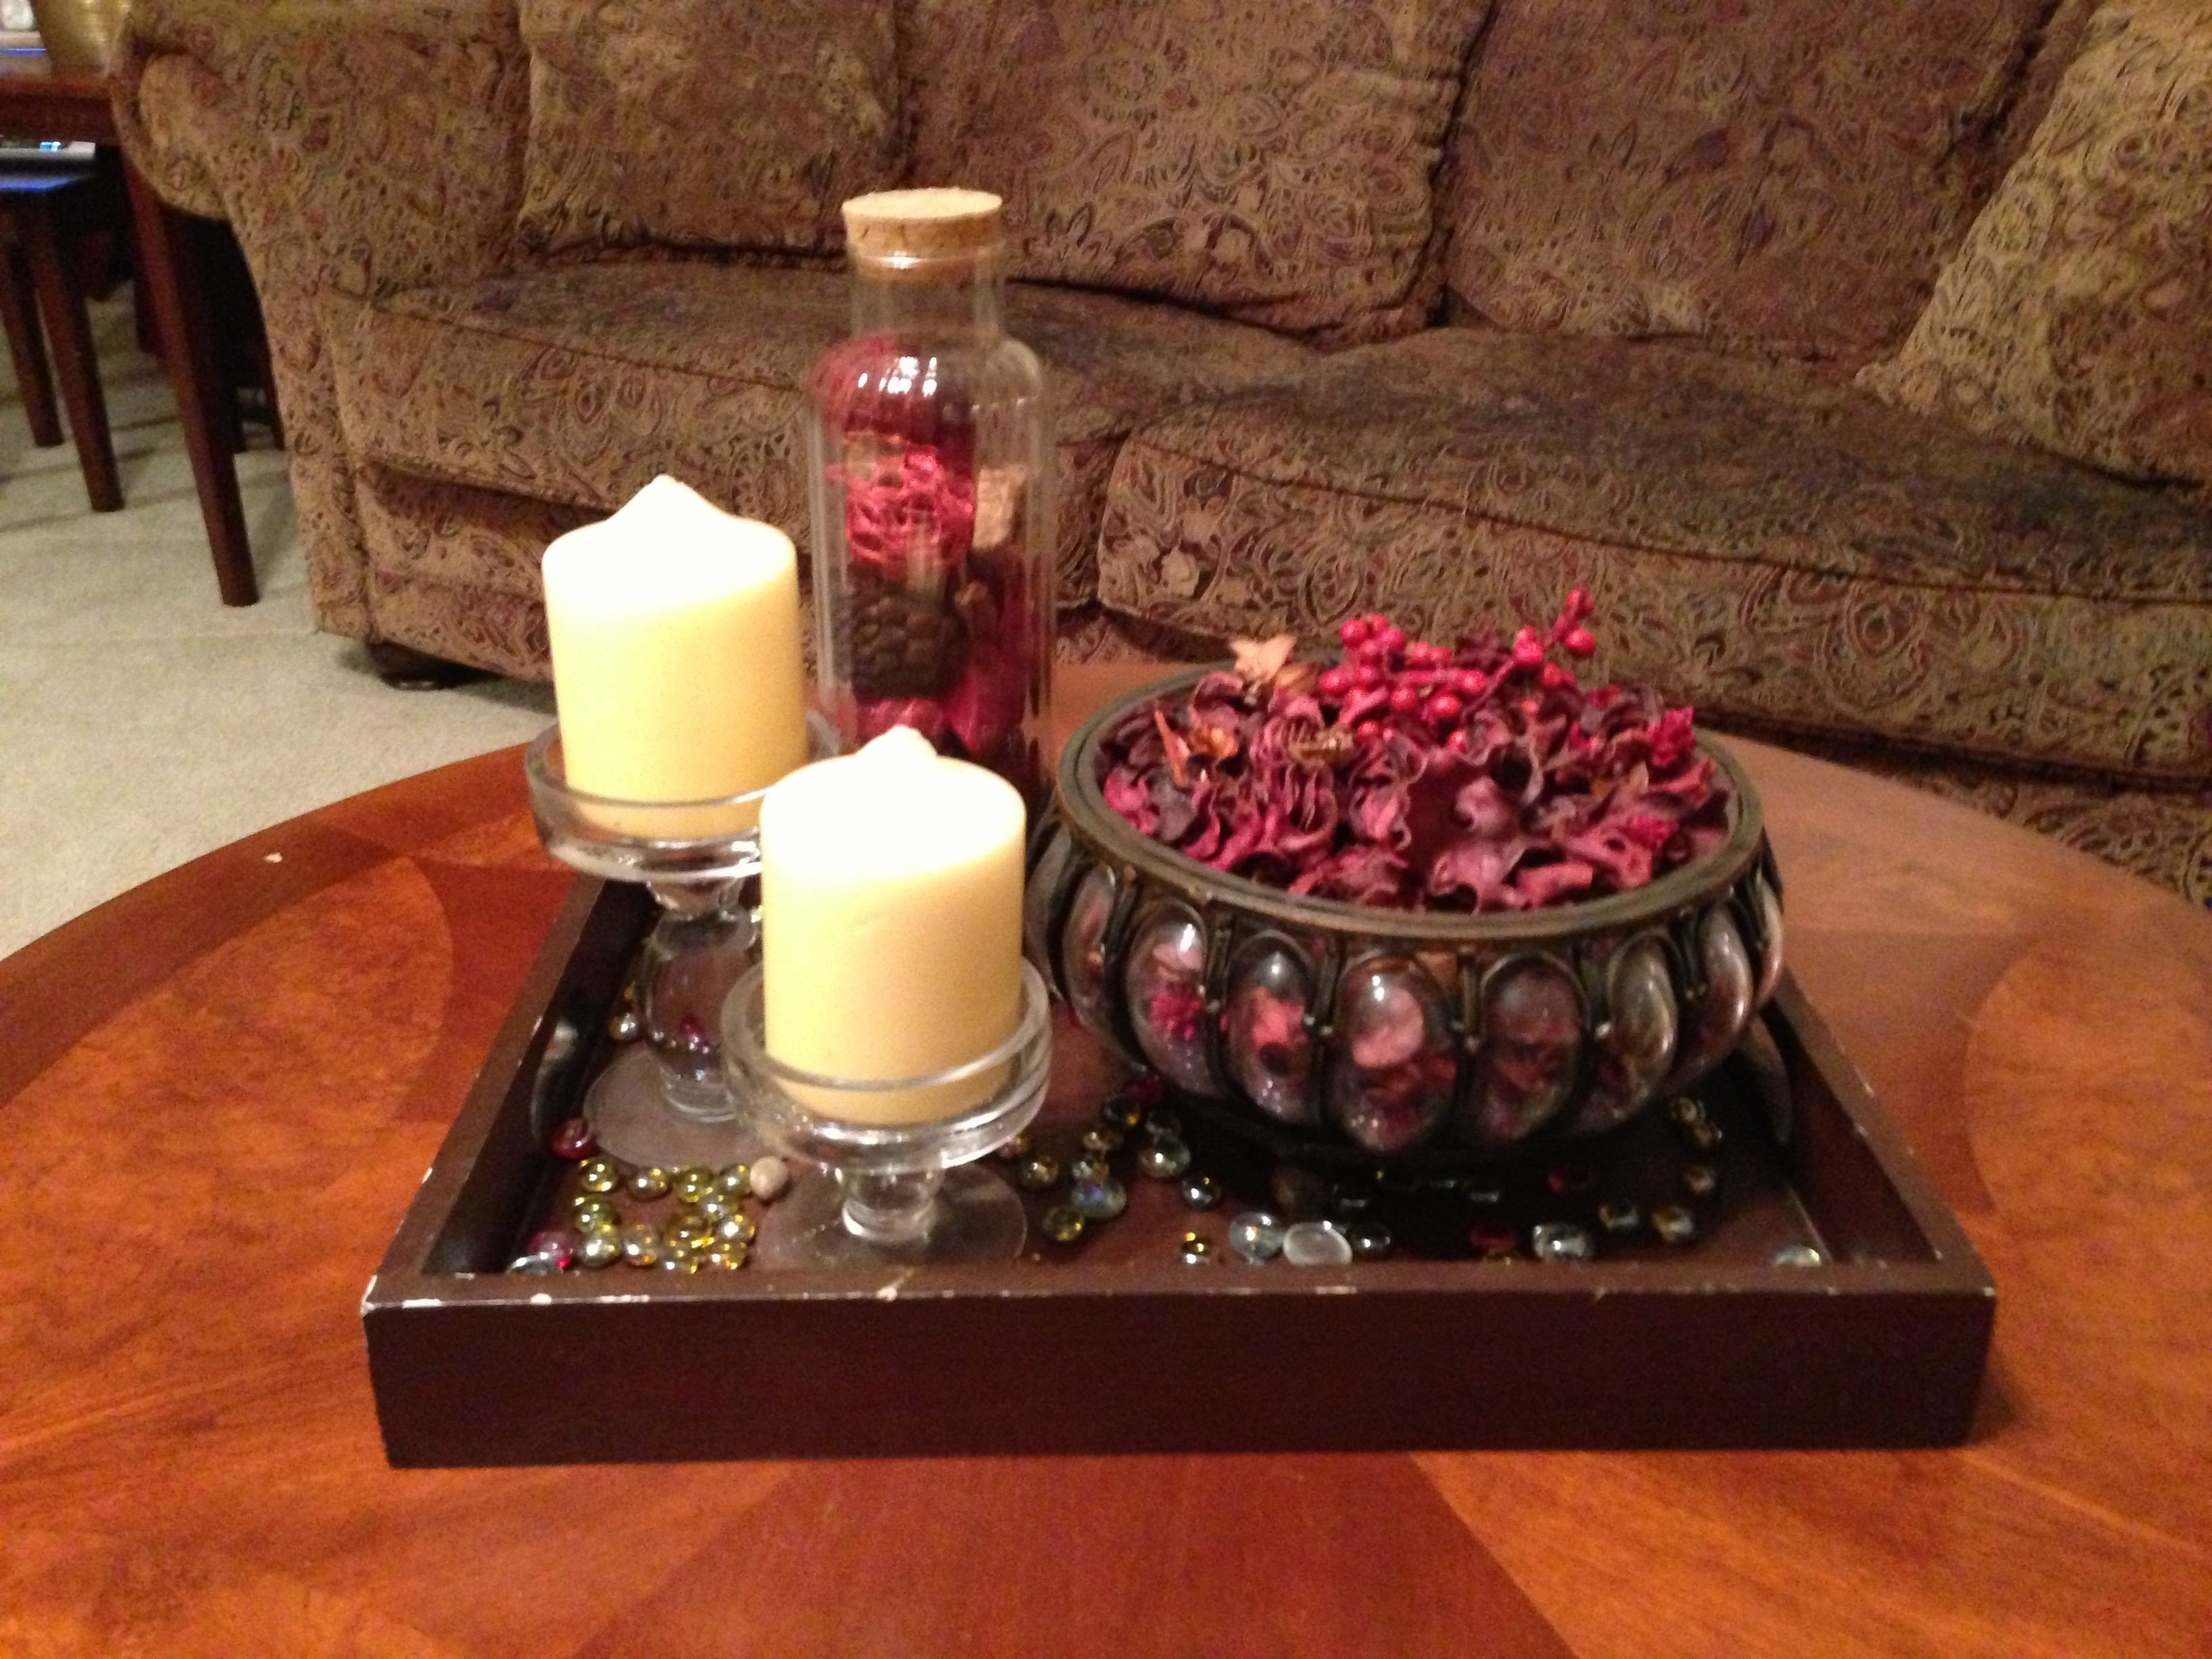 Candle Decor for Coffee Table Inspirational Coffee Table Decor Potpourri and Candle Holder Easy Eccellgroup Fice